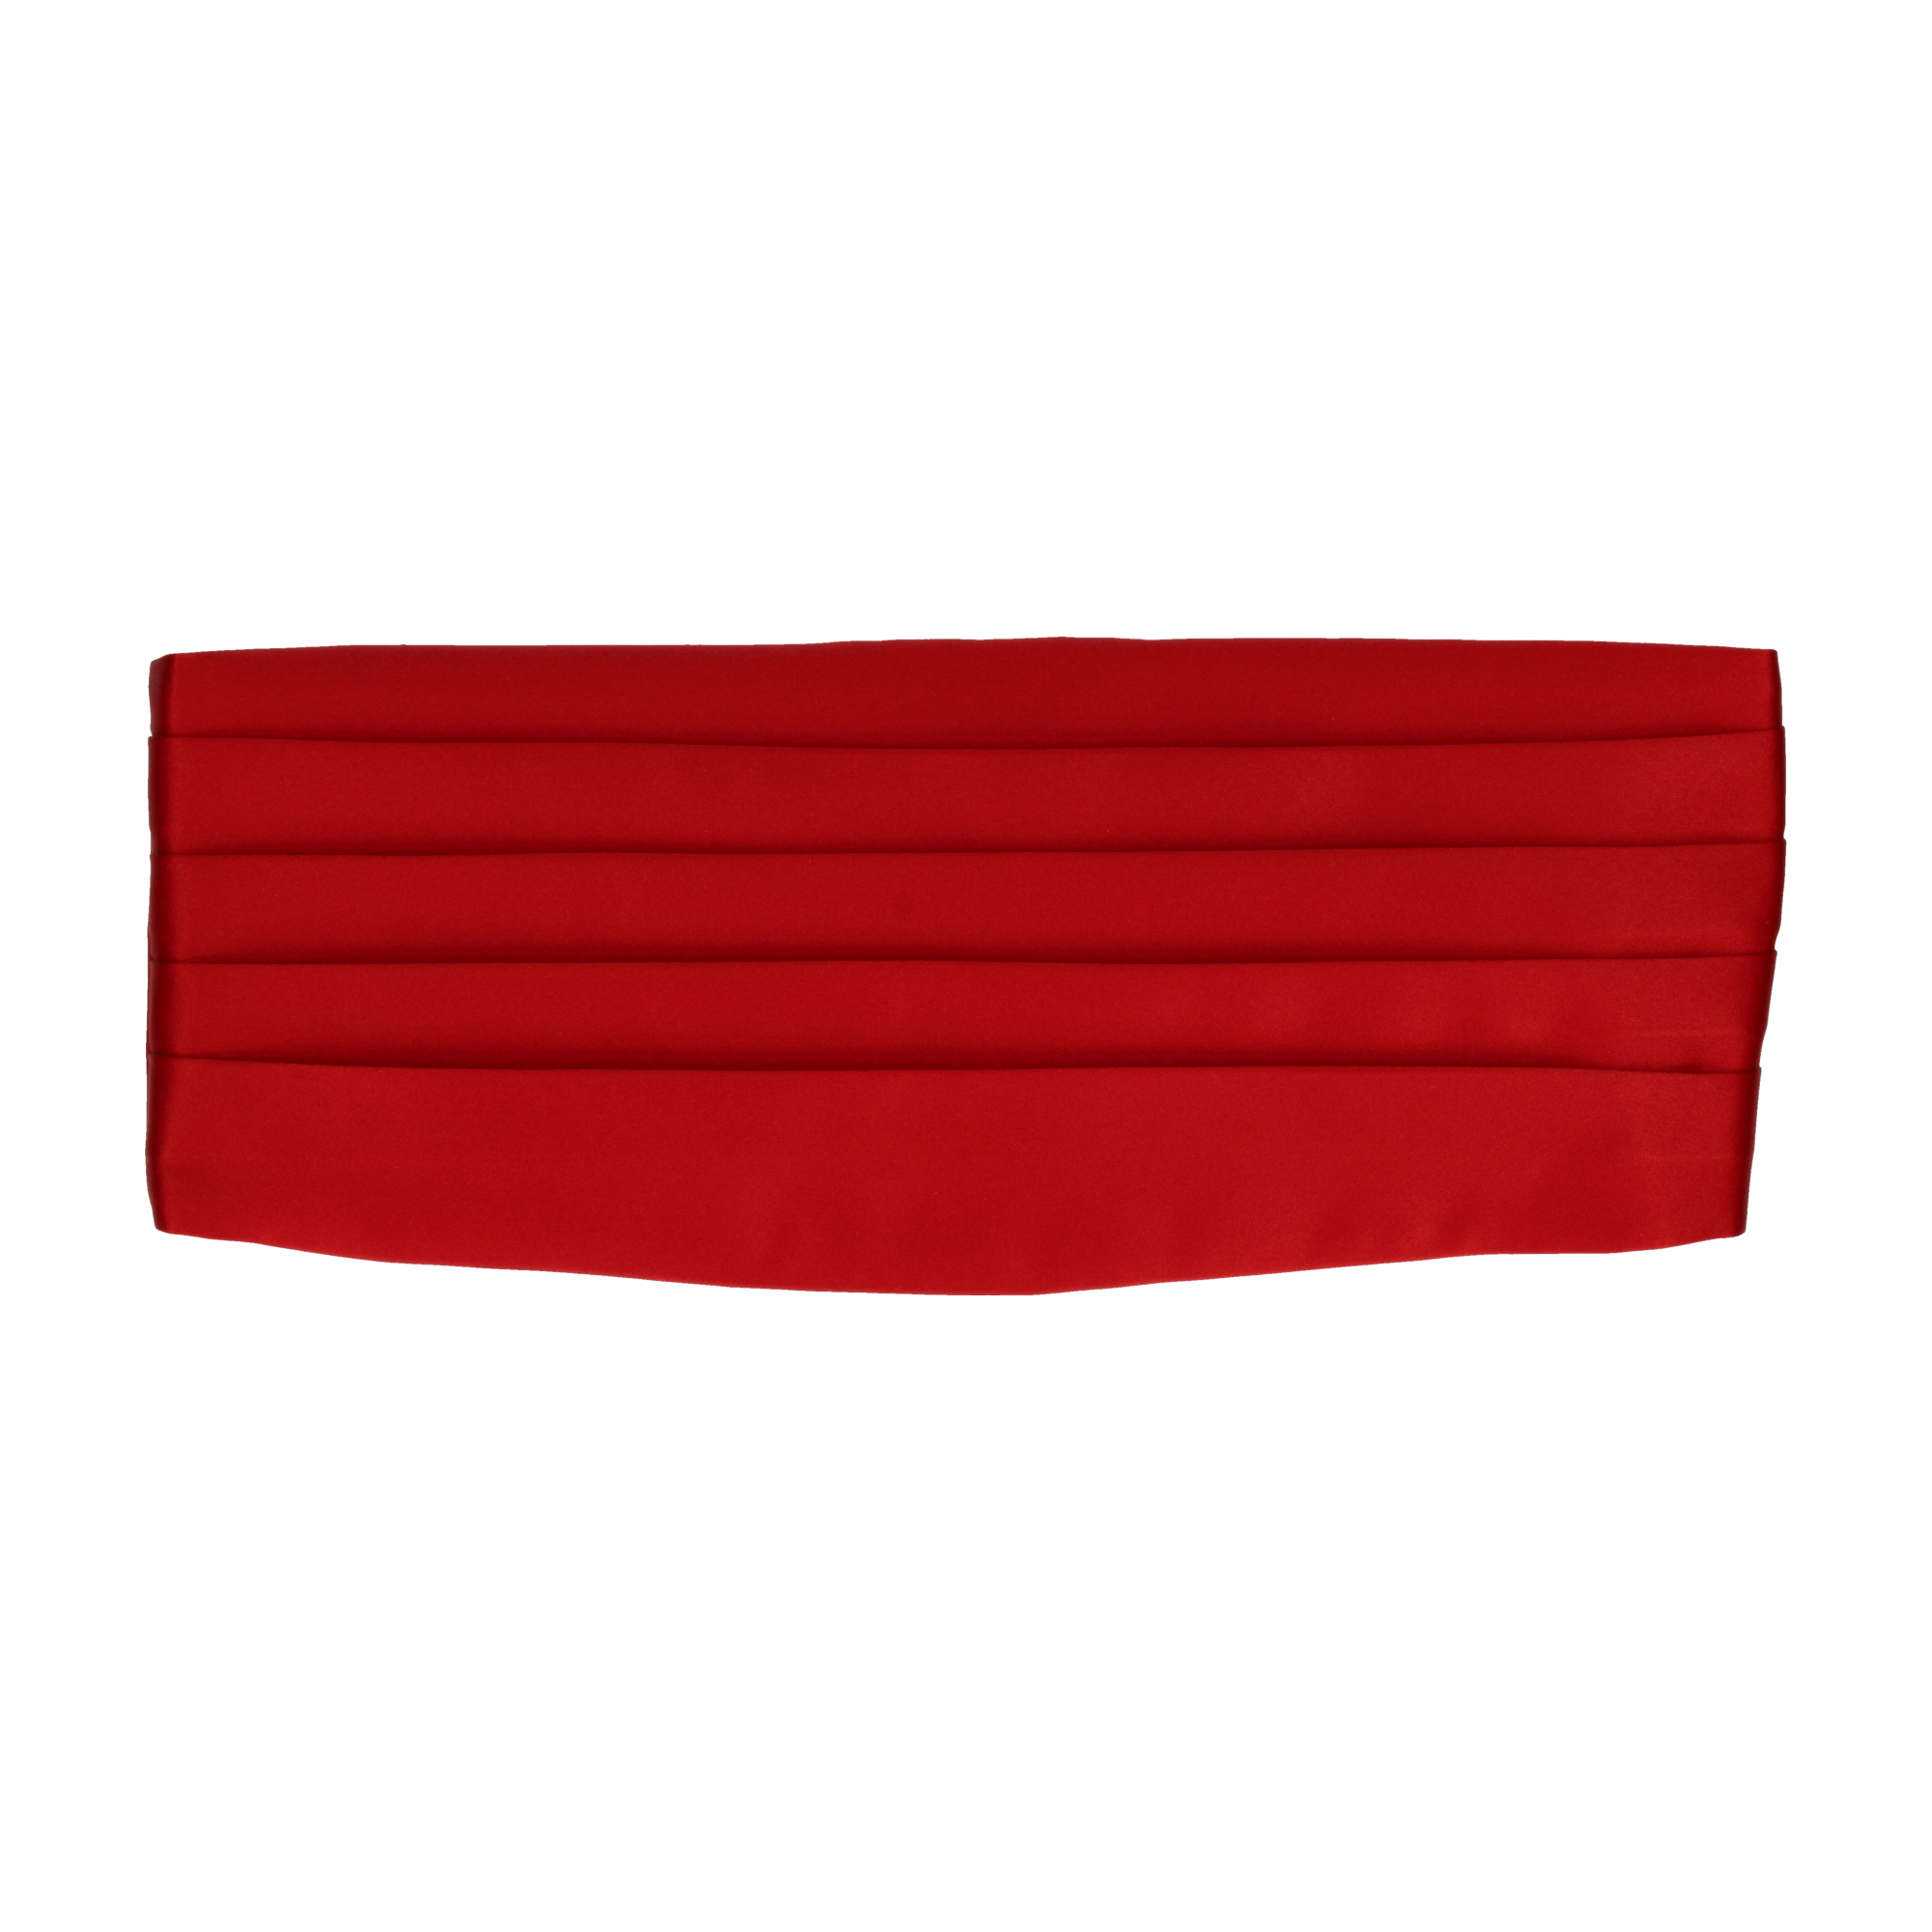 Satin in Vermillion Red Cummerbund